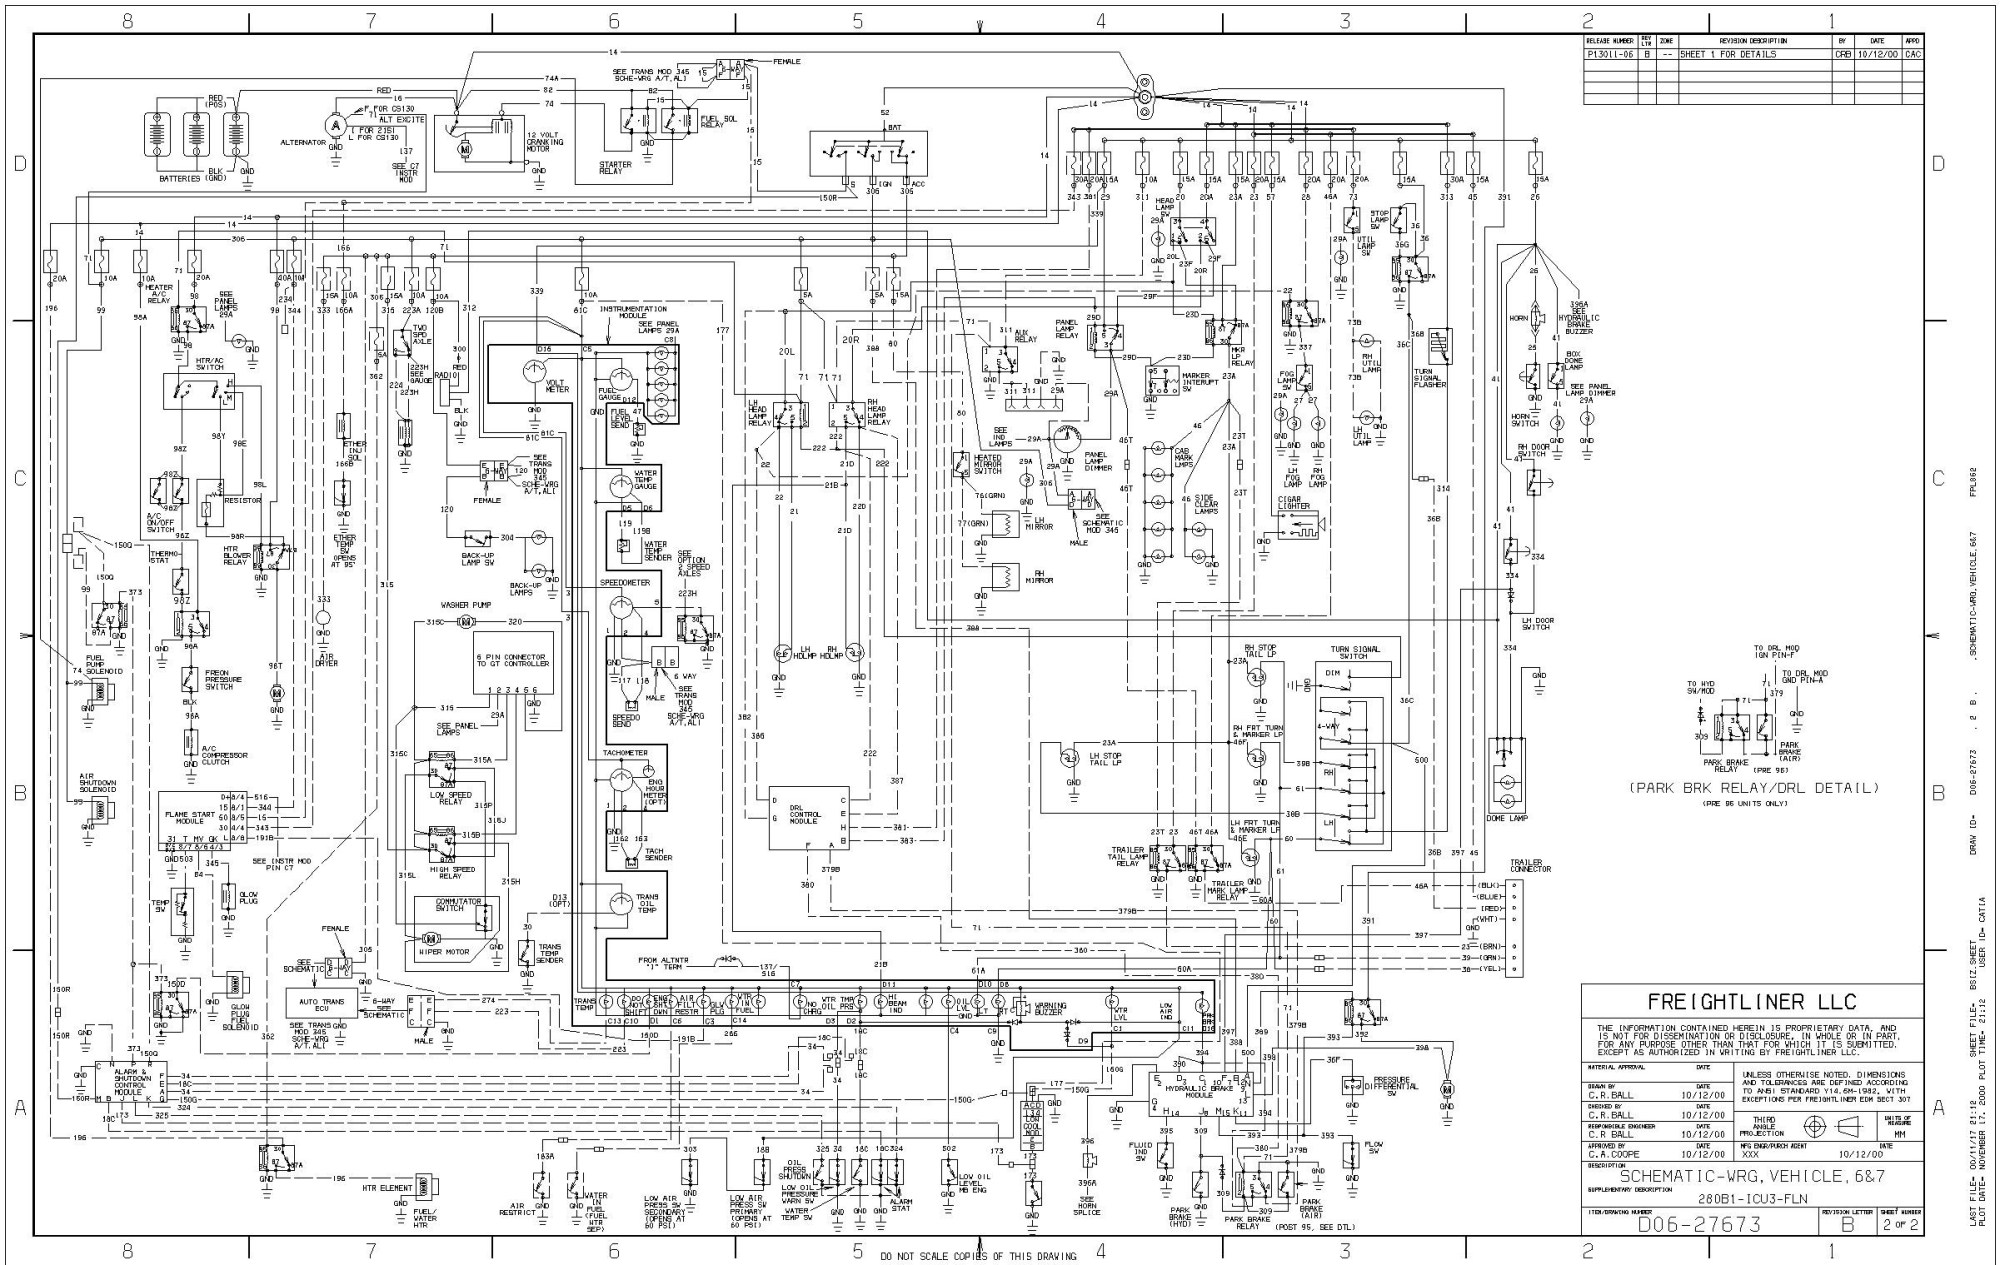 hight resolution of 2004 sterling wiring diagram wiring diagram pictures u2022 rh mapavick co uk gm ignition switch wiring